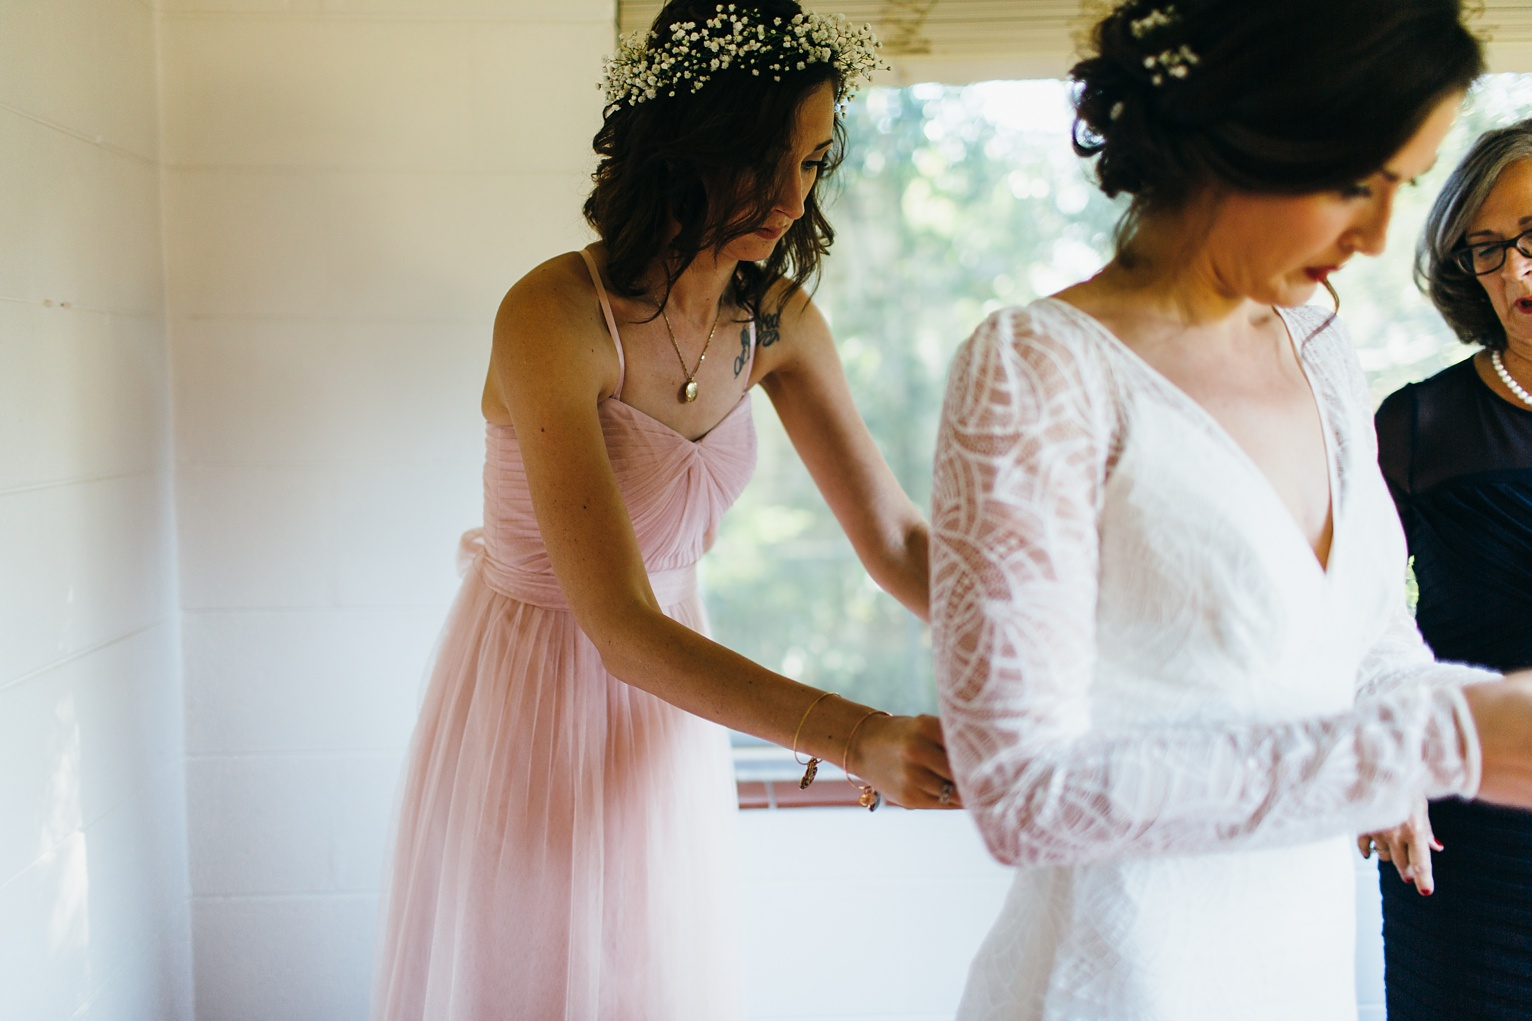 Dreamtownco.com_blog_Landon&Alyson_Wedding_0054.jpg